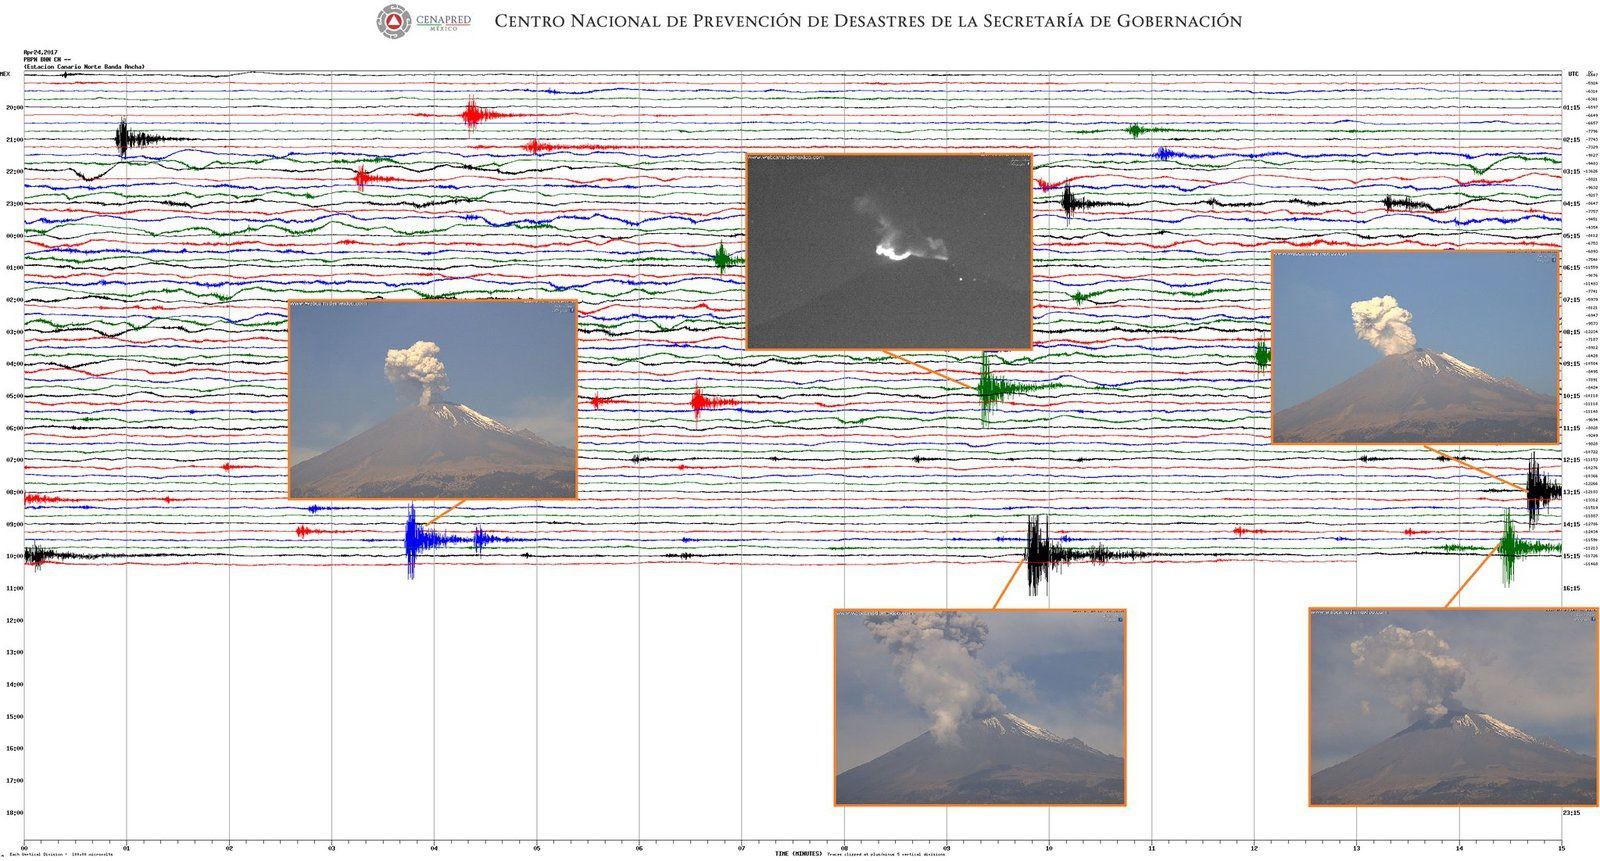 Popocatépetl - a few explosions in the morning of 24.04.2017 and their seismic trace - a click to enlarge - Doc. Cenapred